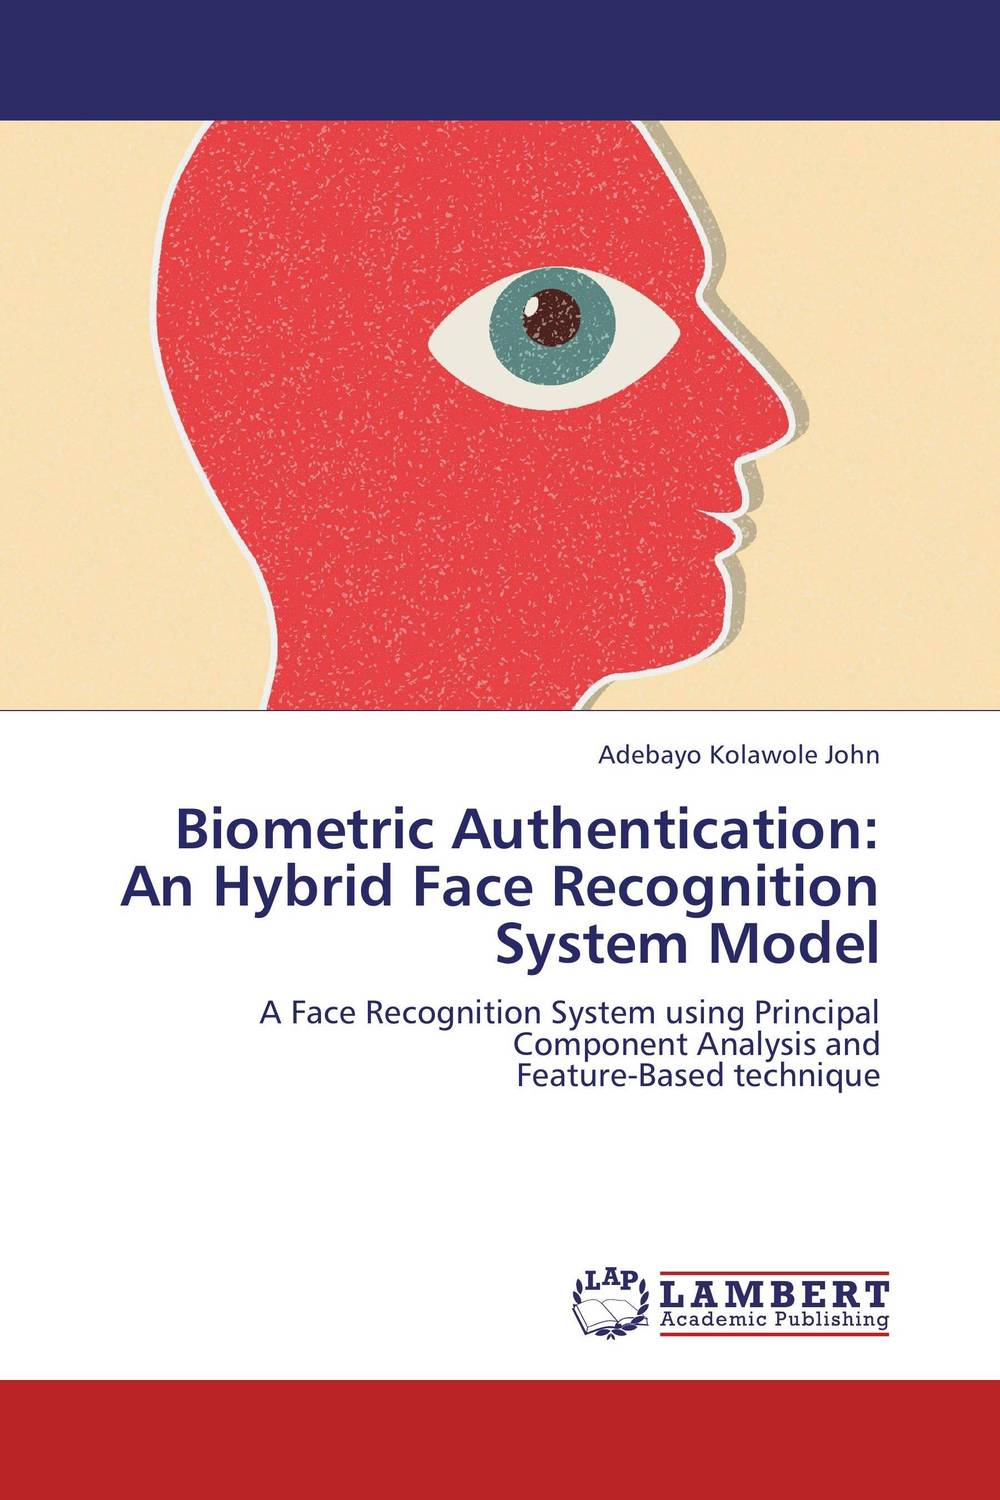 все цены на Biometric Authentication: An Hybrid Face Recognition System Model онлайн